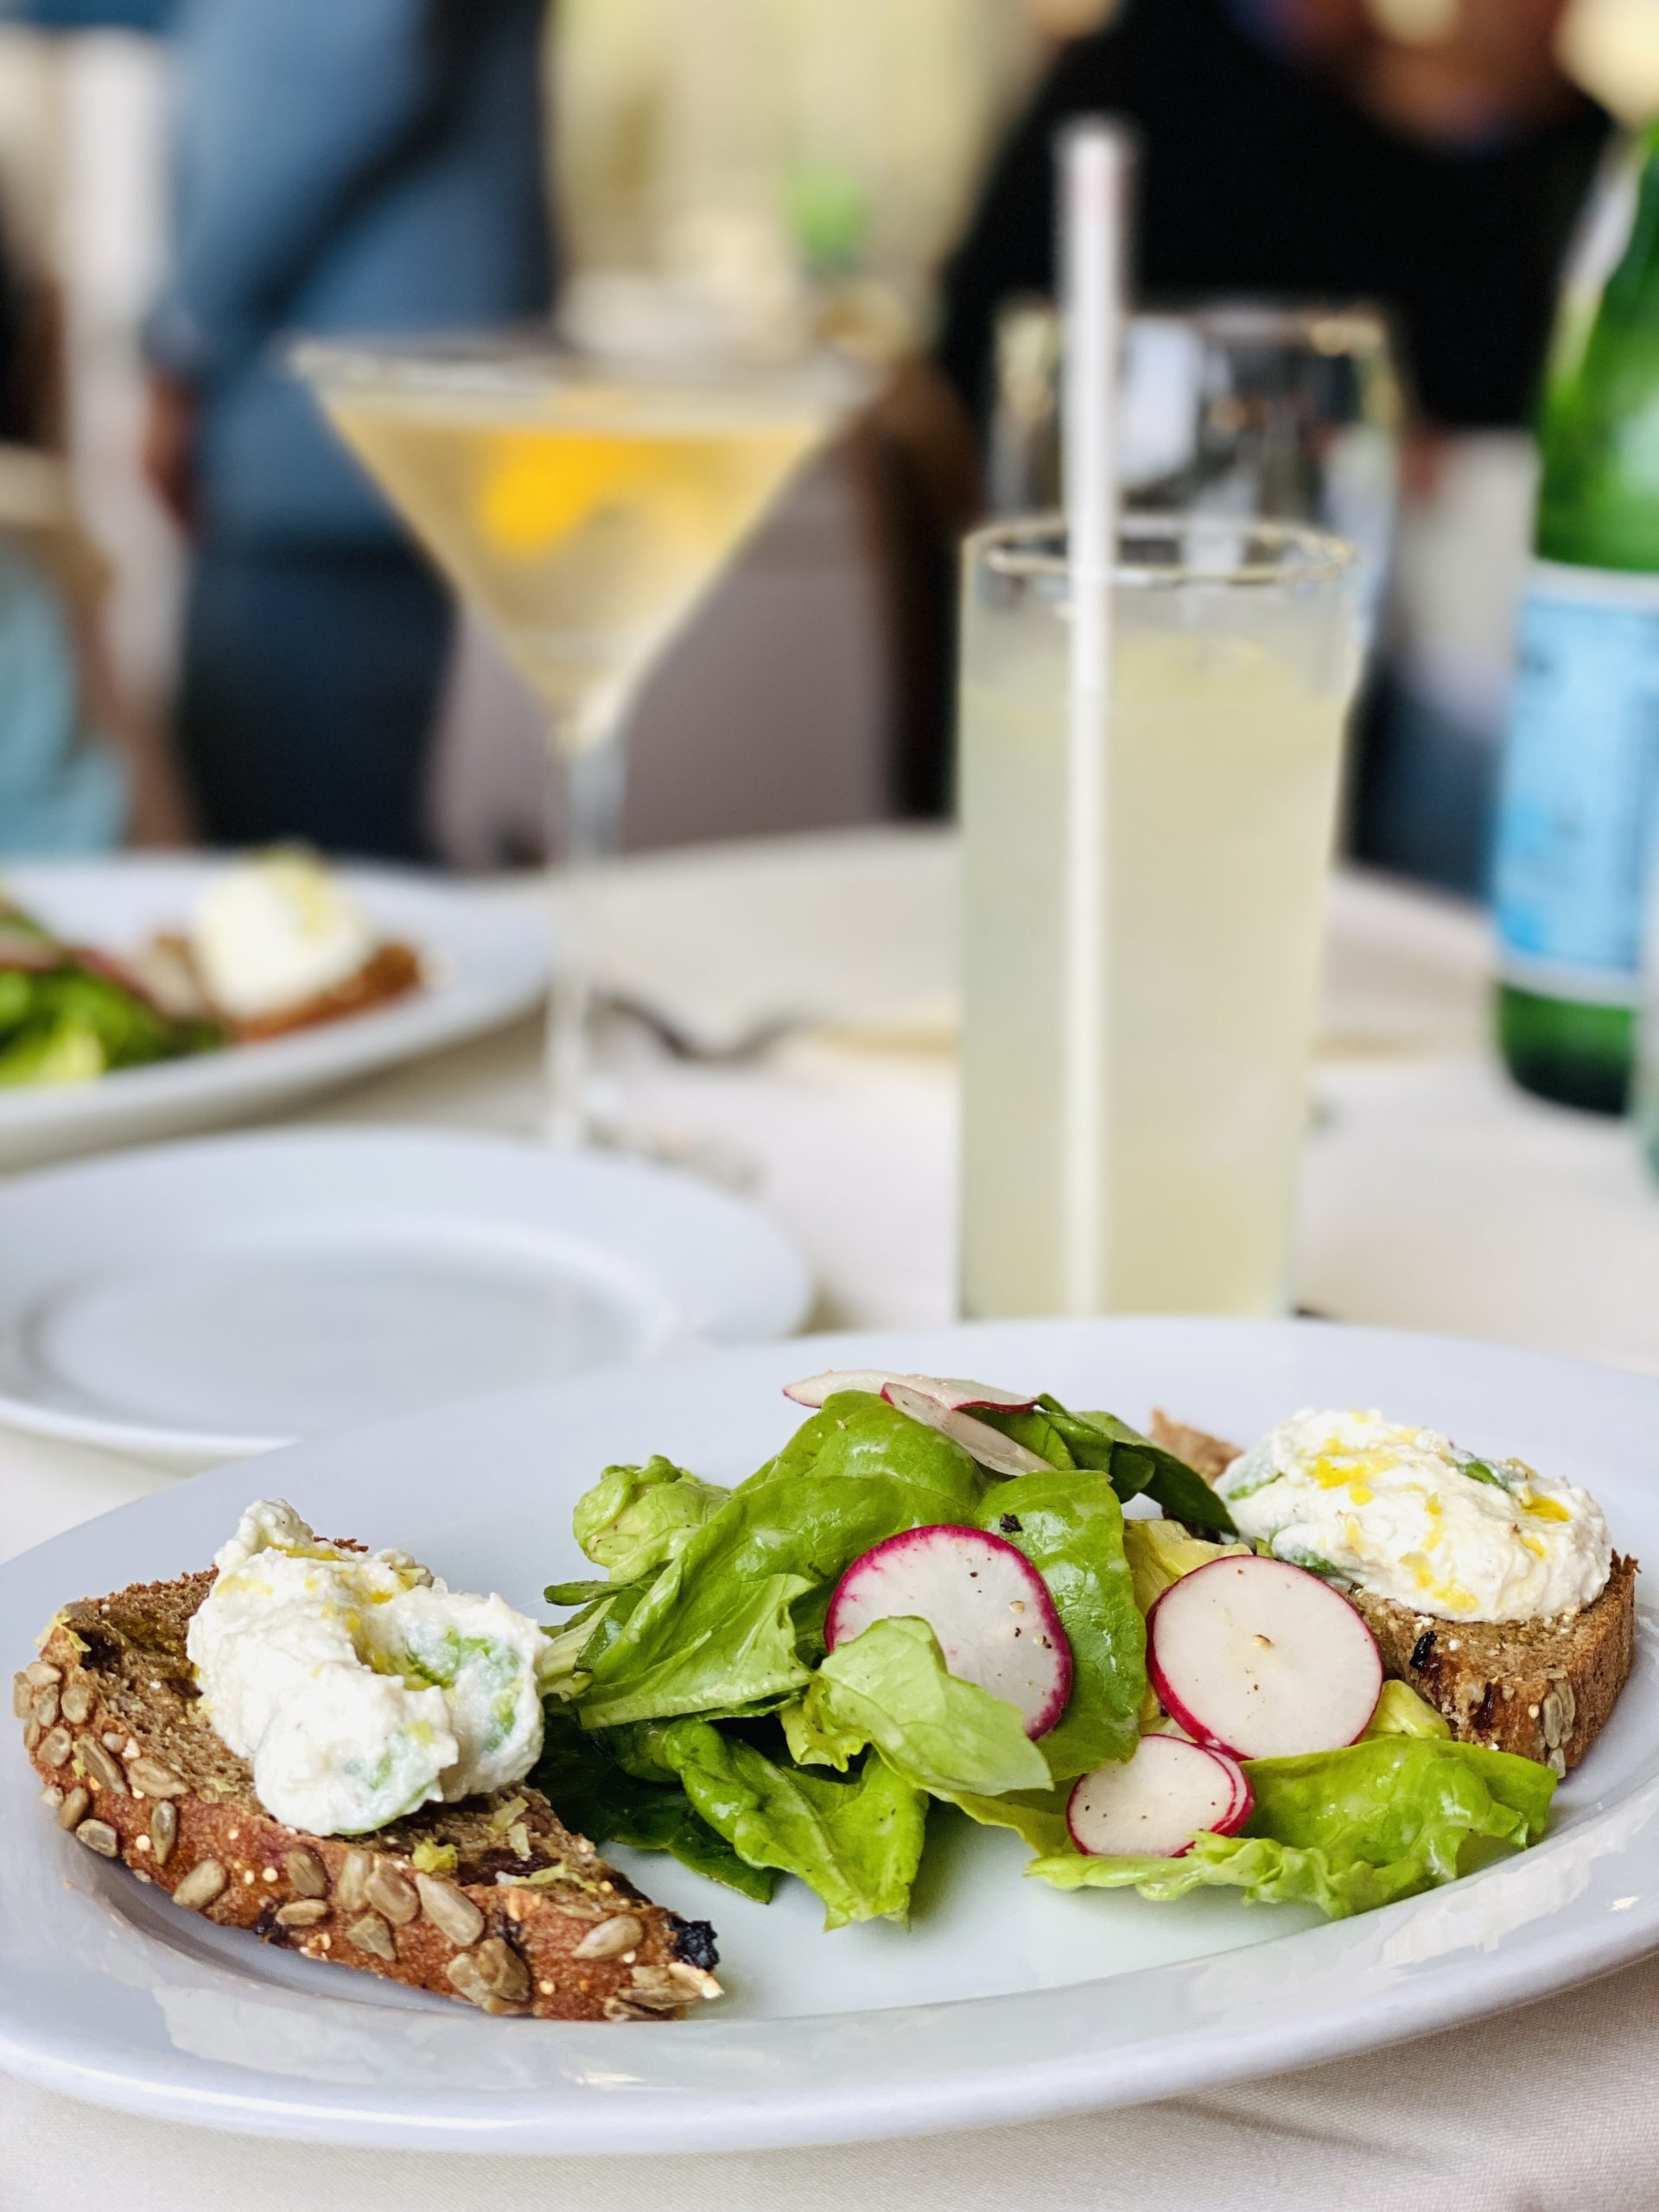 Sweet garlic ricotta with fava beans, butter lettuce and spelt bread created by chef Marc Murphy, guest chef at the Old Stove Pub on June 1.